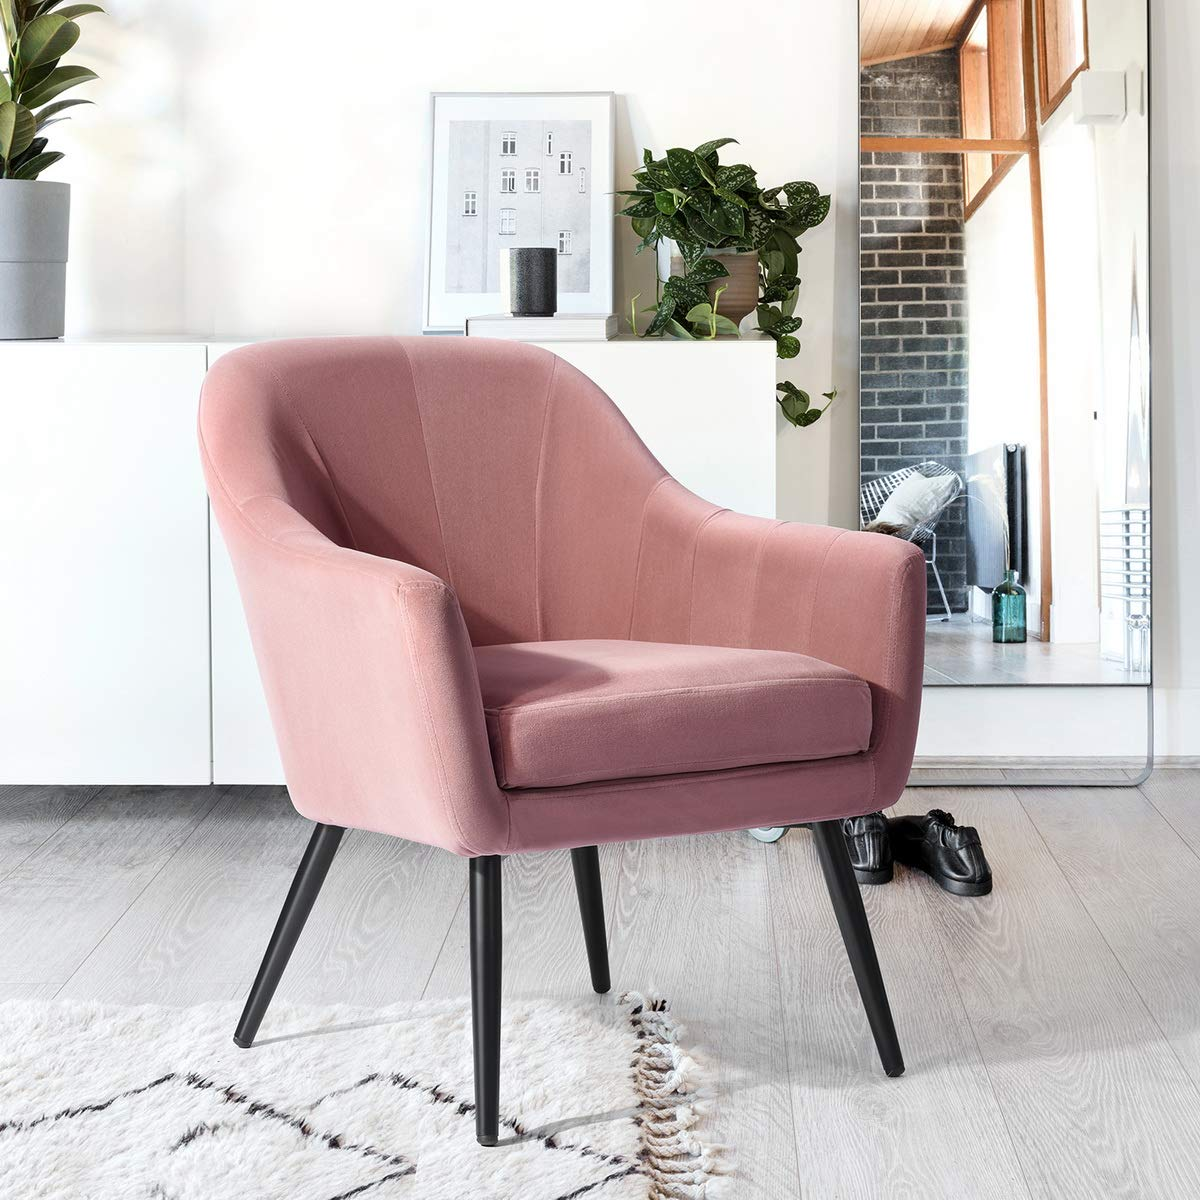 Pink HOMEMAKE Accent Chair Mid-Century Modern Fabric Thick Padded Arm Chair Metal Frame Legs (Green)